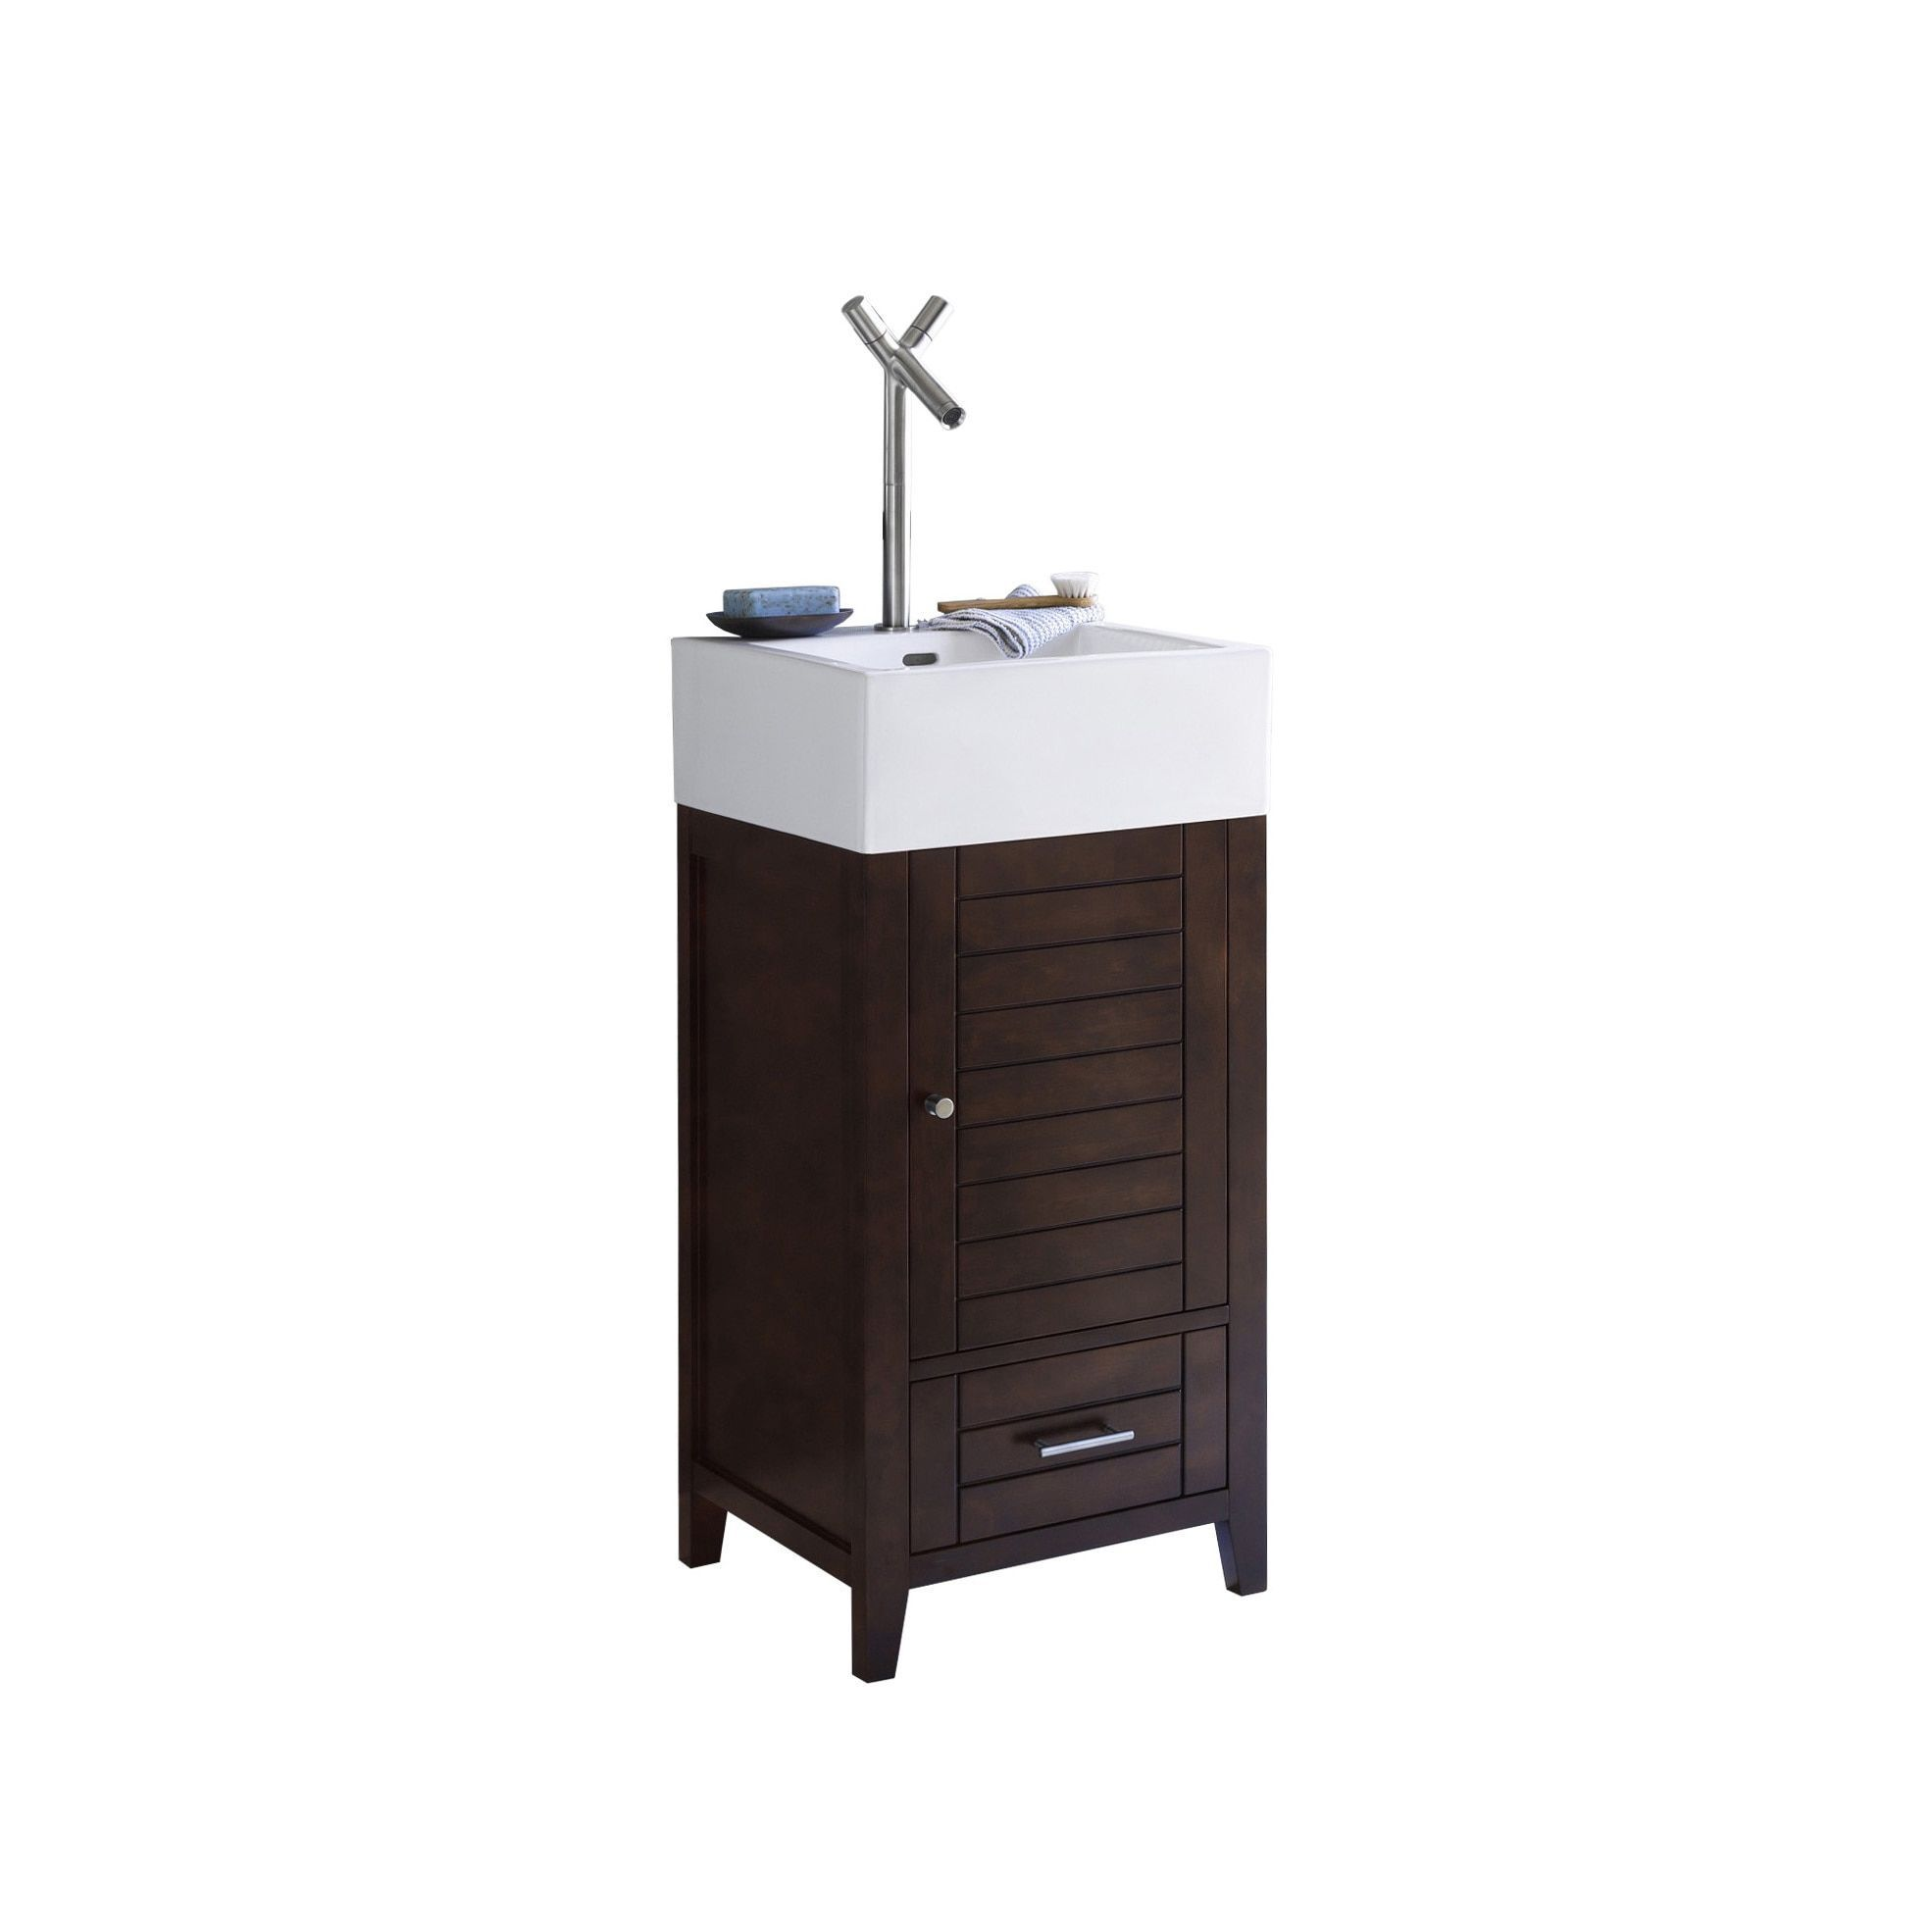 full depth size idea bathroom home vanity of vanities lowes unique inch ikea lovely